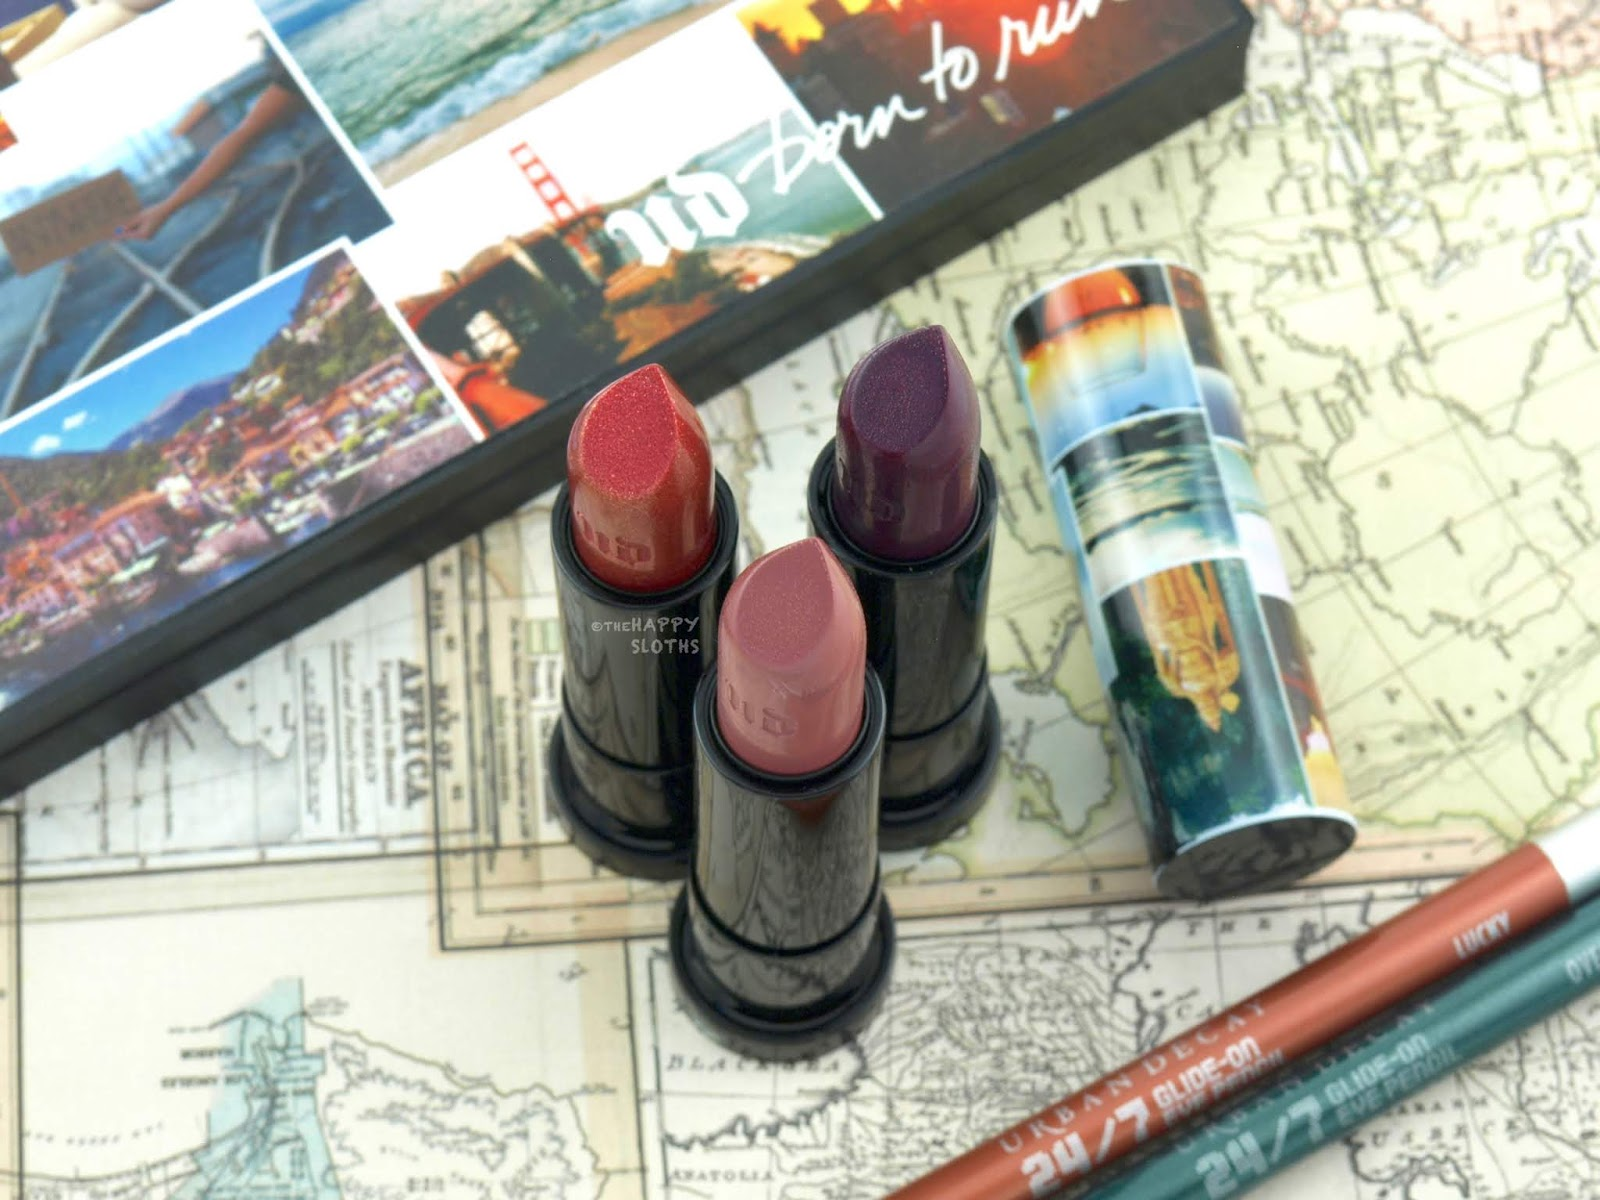 Urban Decay | Born to Run Vice Lipstick: Review and Swatches